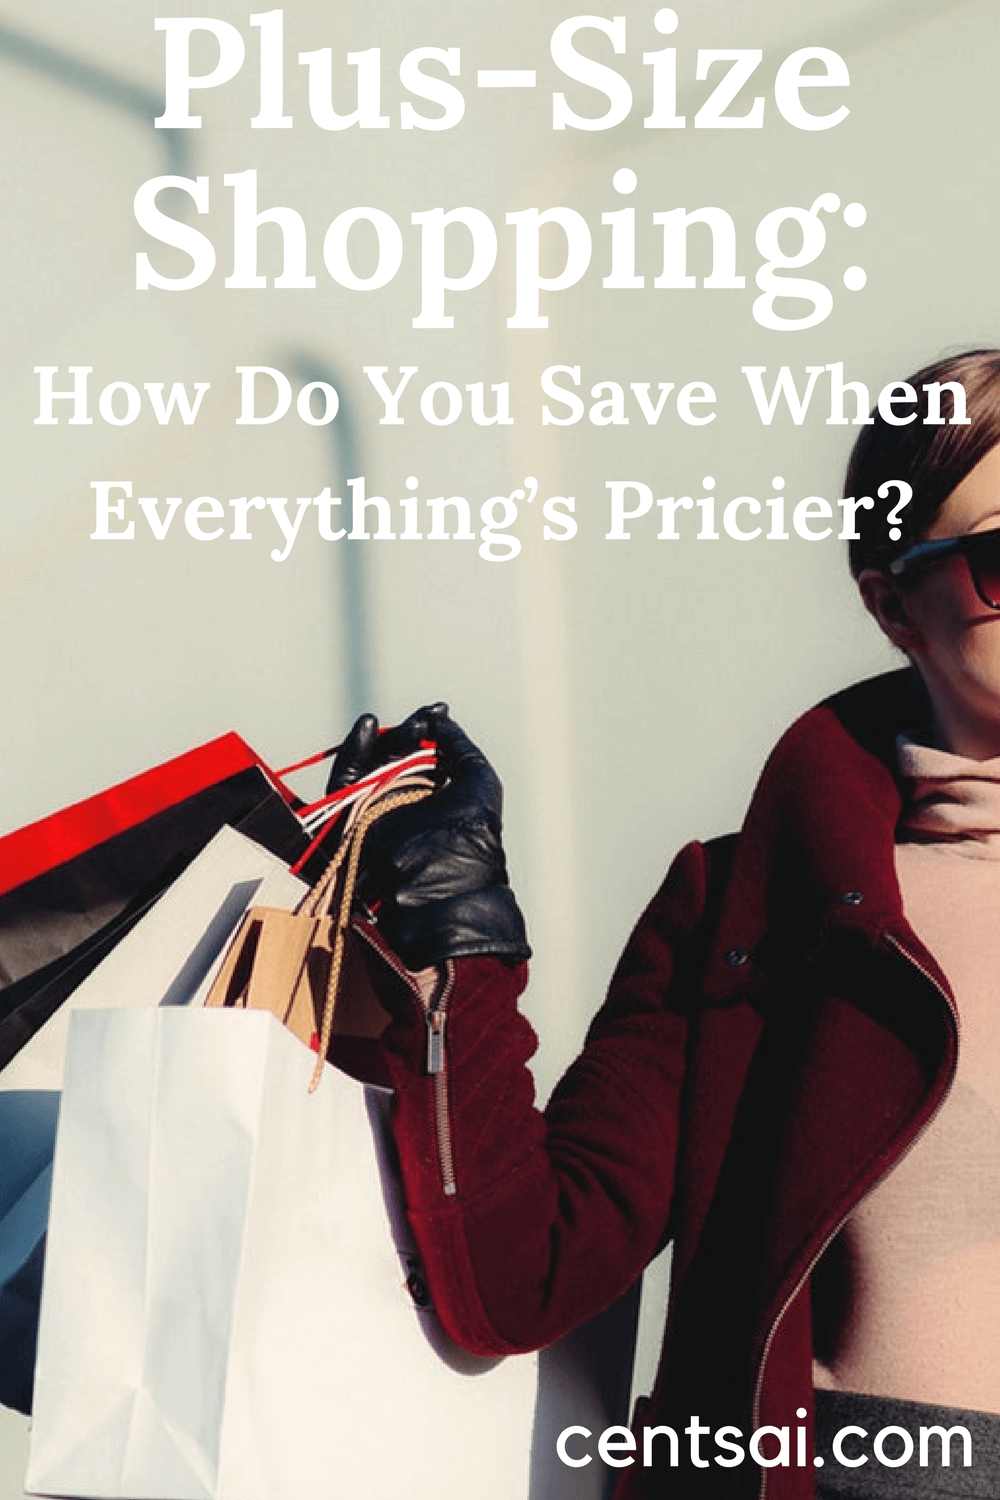 Plus-Size Shopping How Do You Save When Everything's Pricier